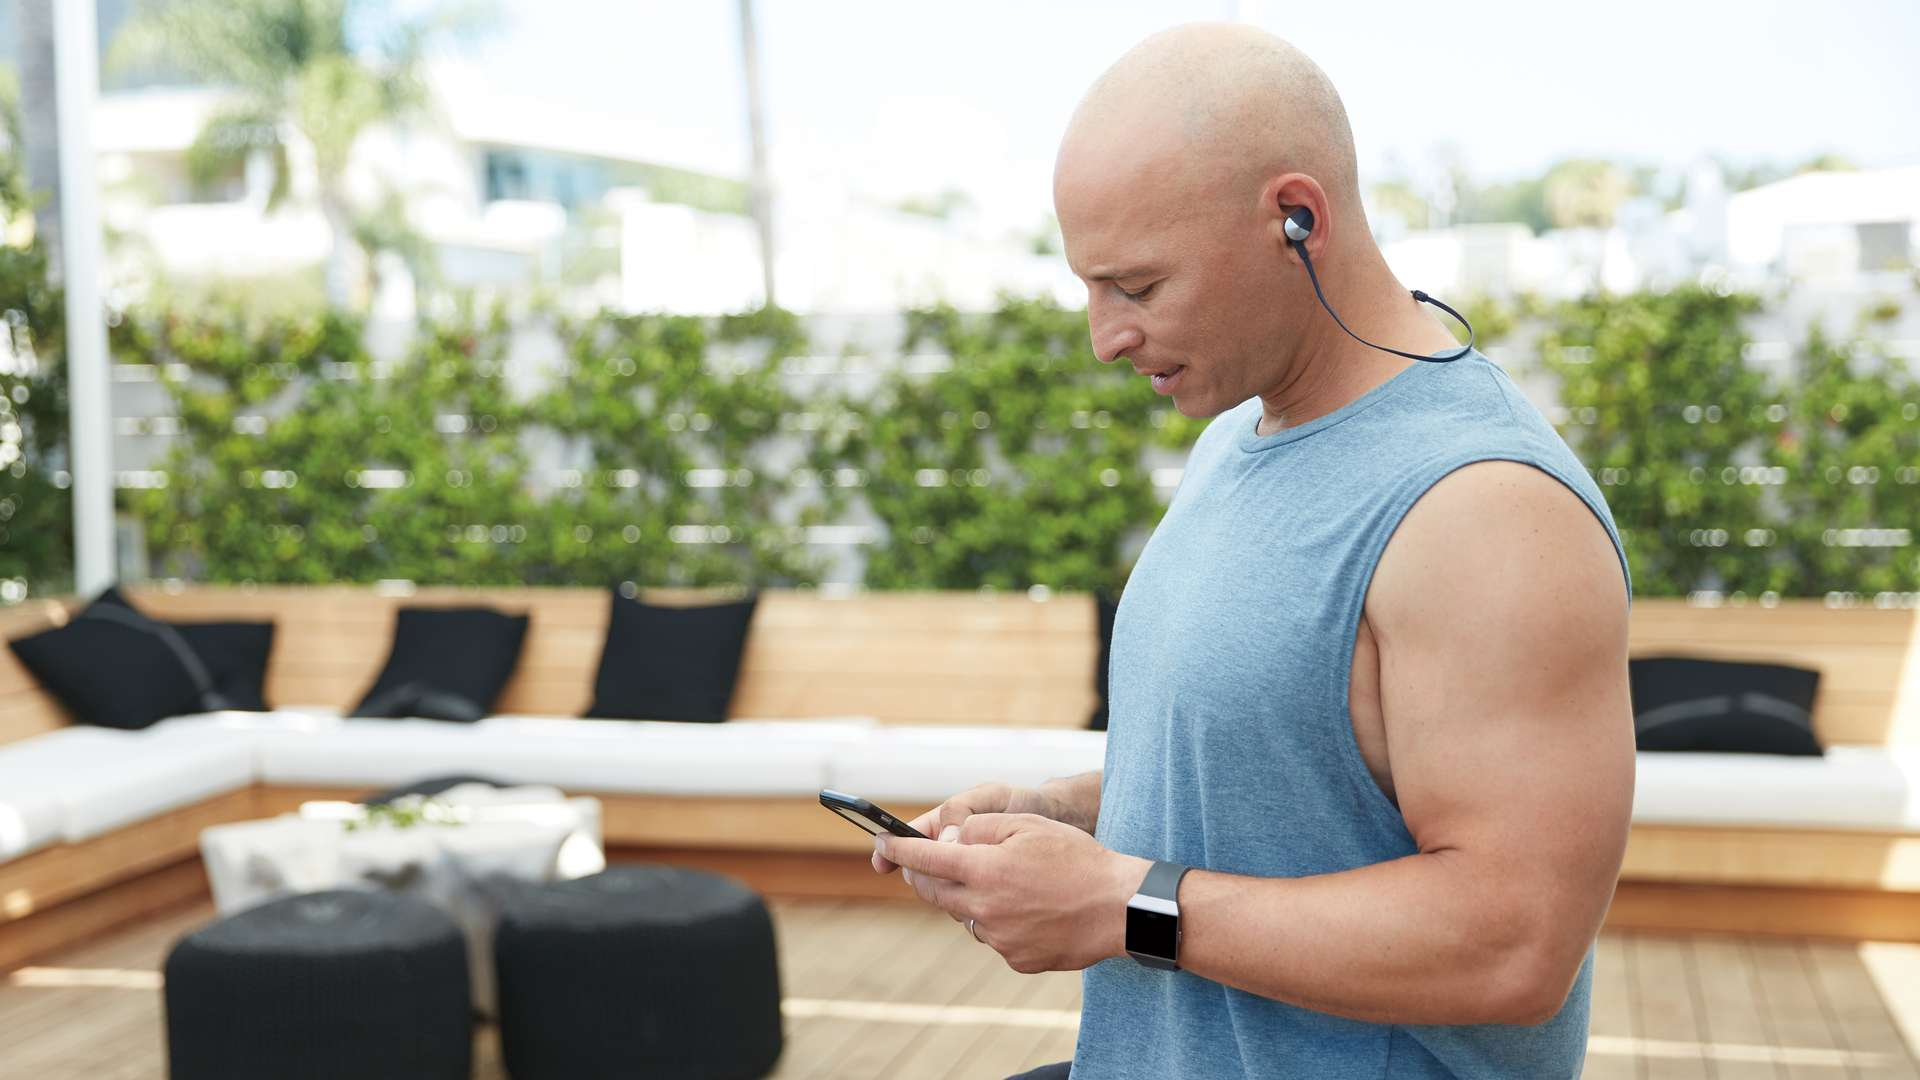 An exercise enthusiast syncing their Fitbit fitness tracker.